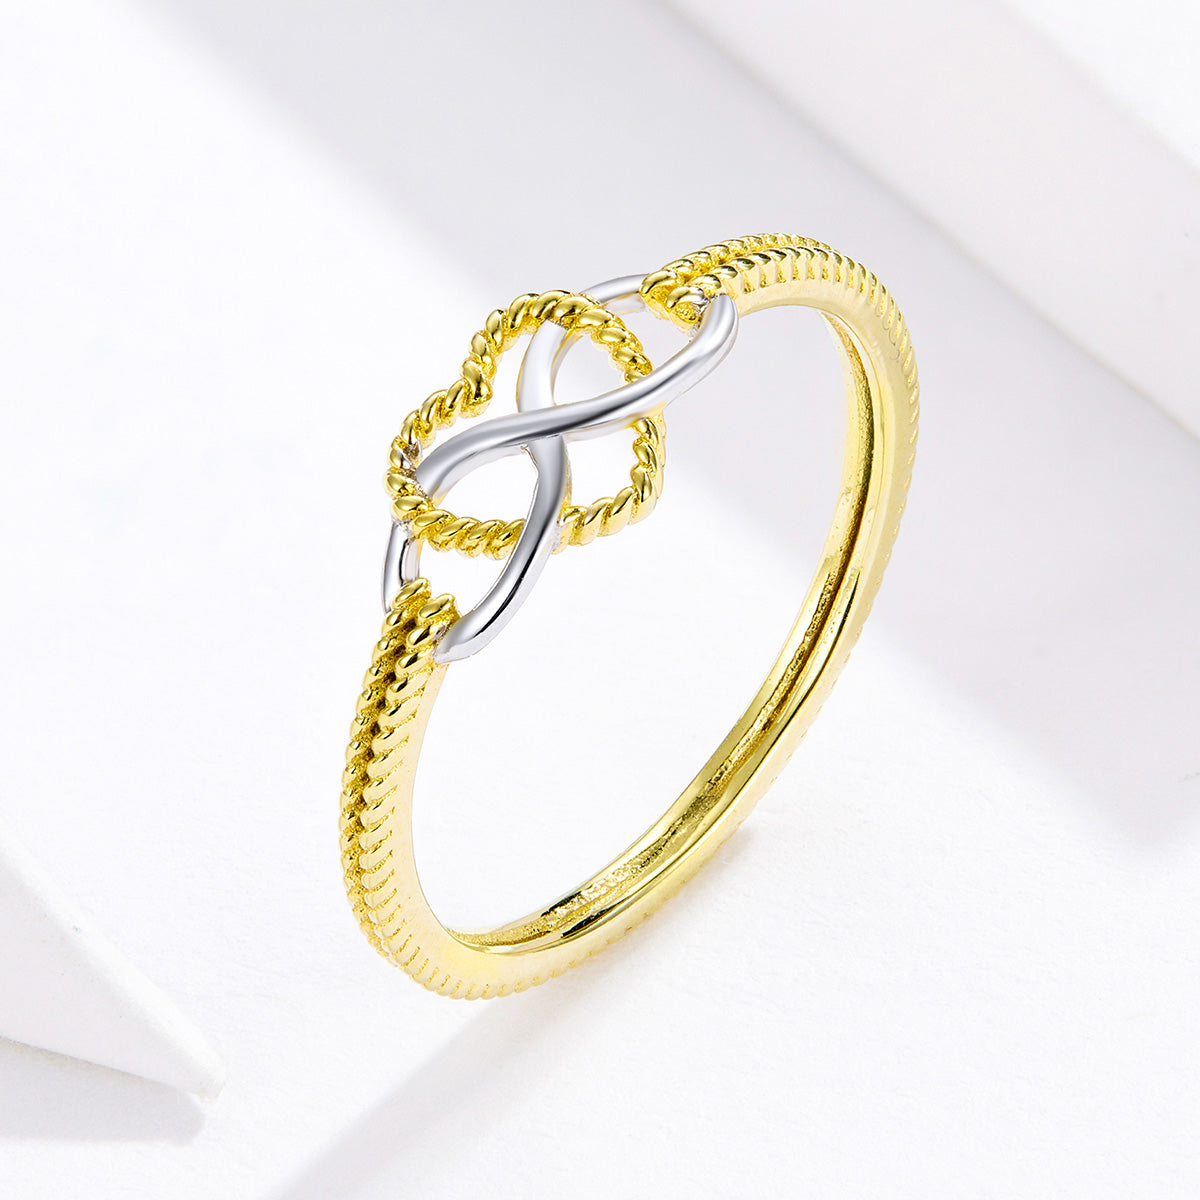 S925 sterling silver has always loved the ring infinity heart-shaped ring platinum and yellow gold ring